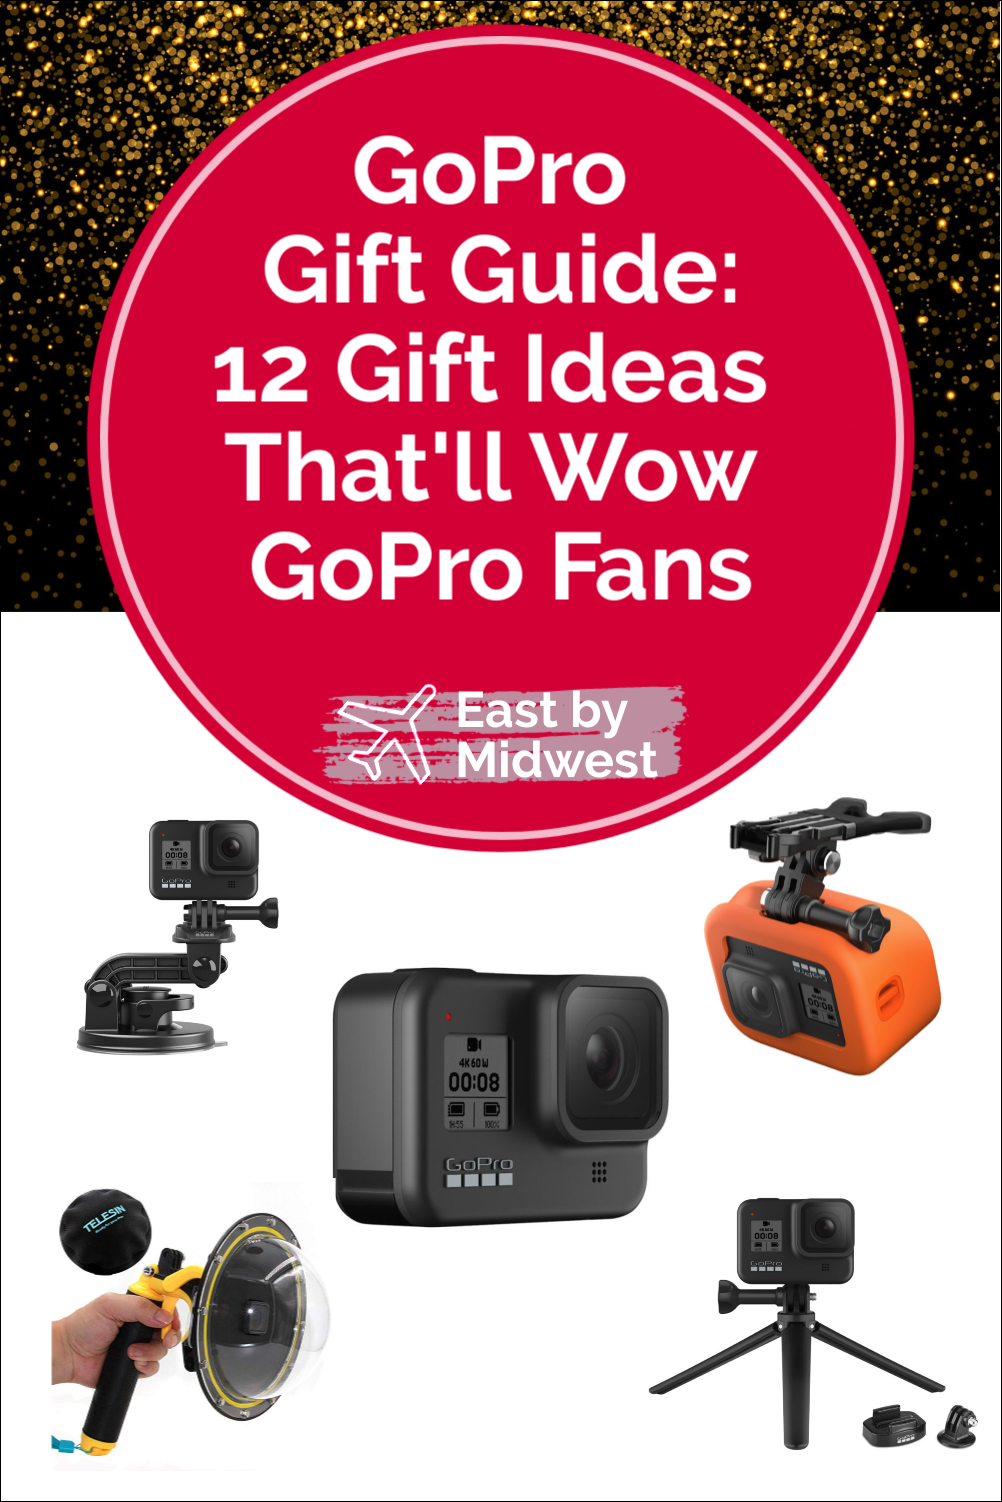 GoPro Gift Guide: 12 Gift Ideas That'll Wow GoPro Fans